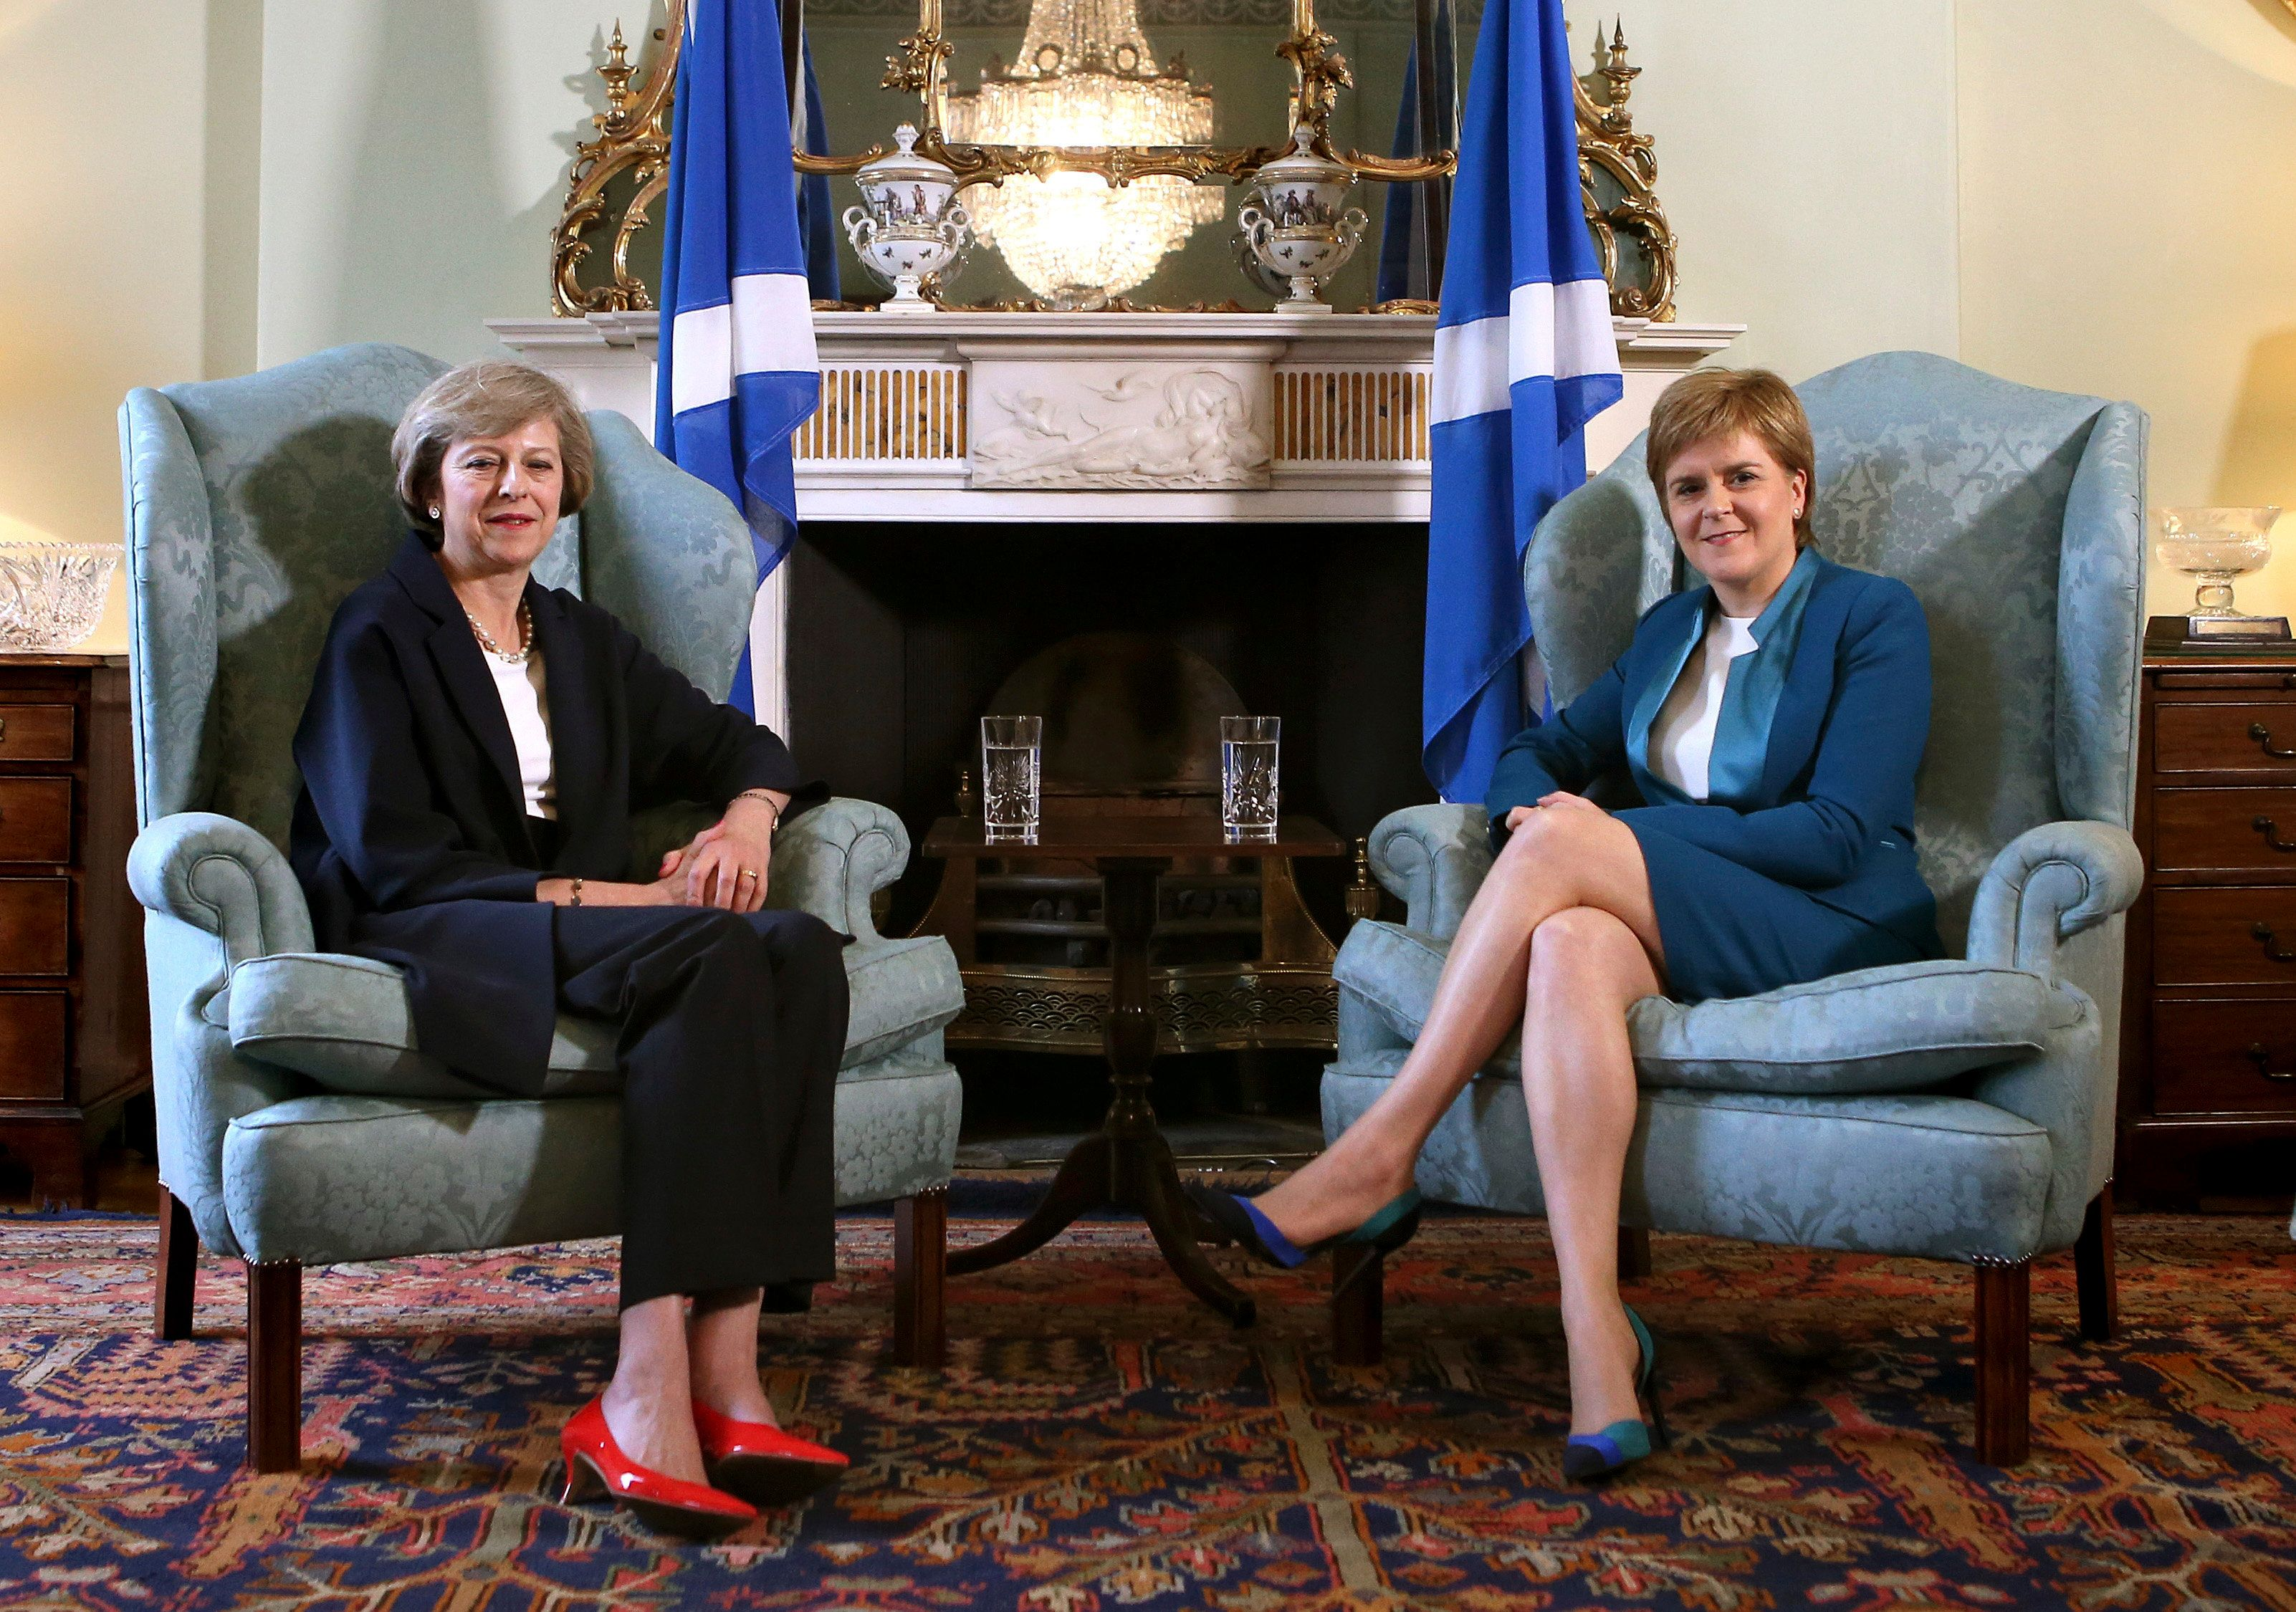 New British Prime Minister Theresa May meeting First Minister of Scotland, Nicola Sturgeon at Bute House in Edinburgh, Scotland, July 15, 2016. REUTERS/James Glossop/Pool